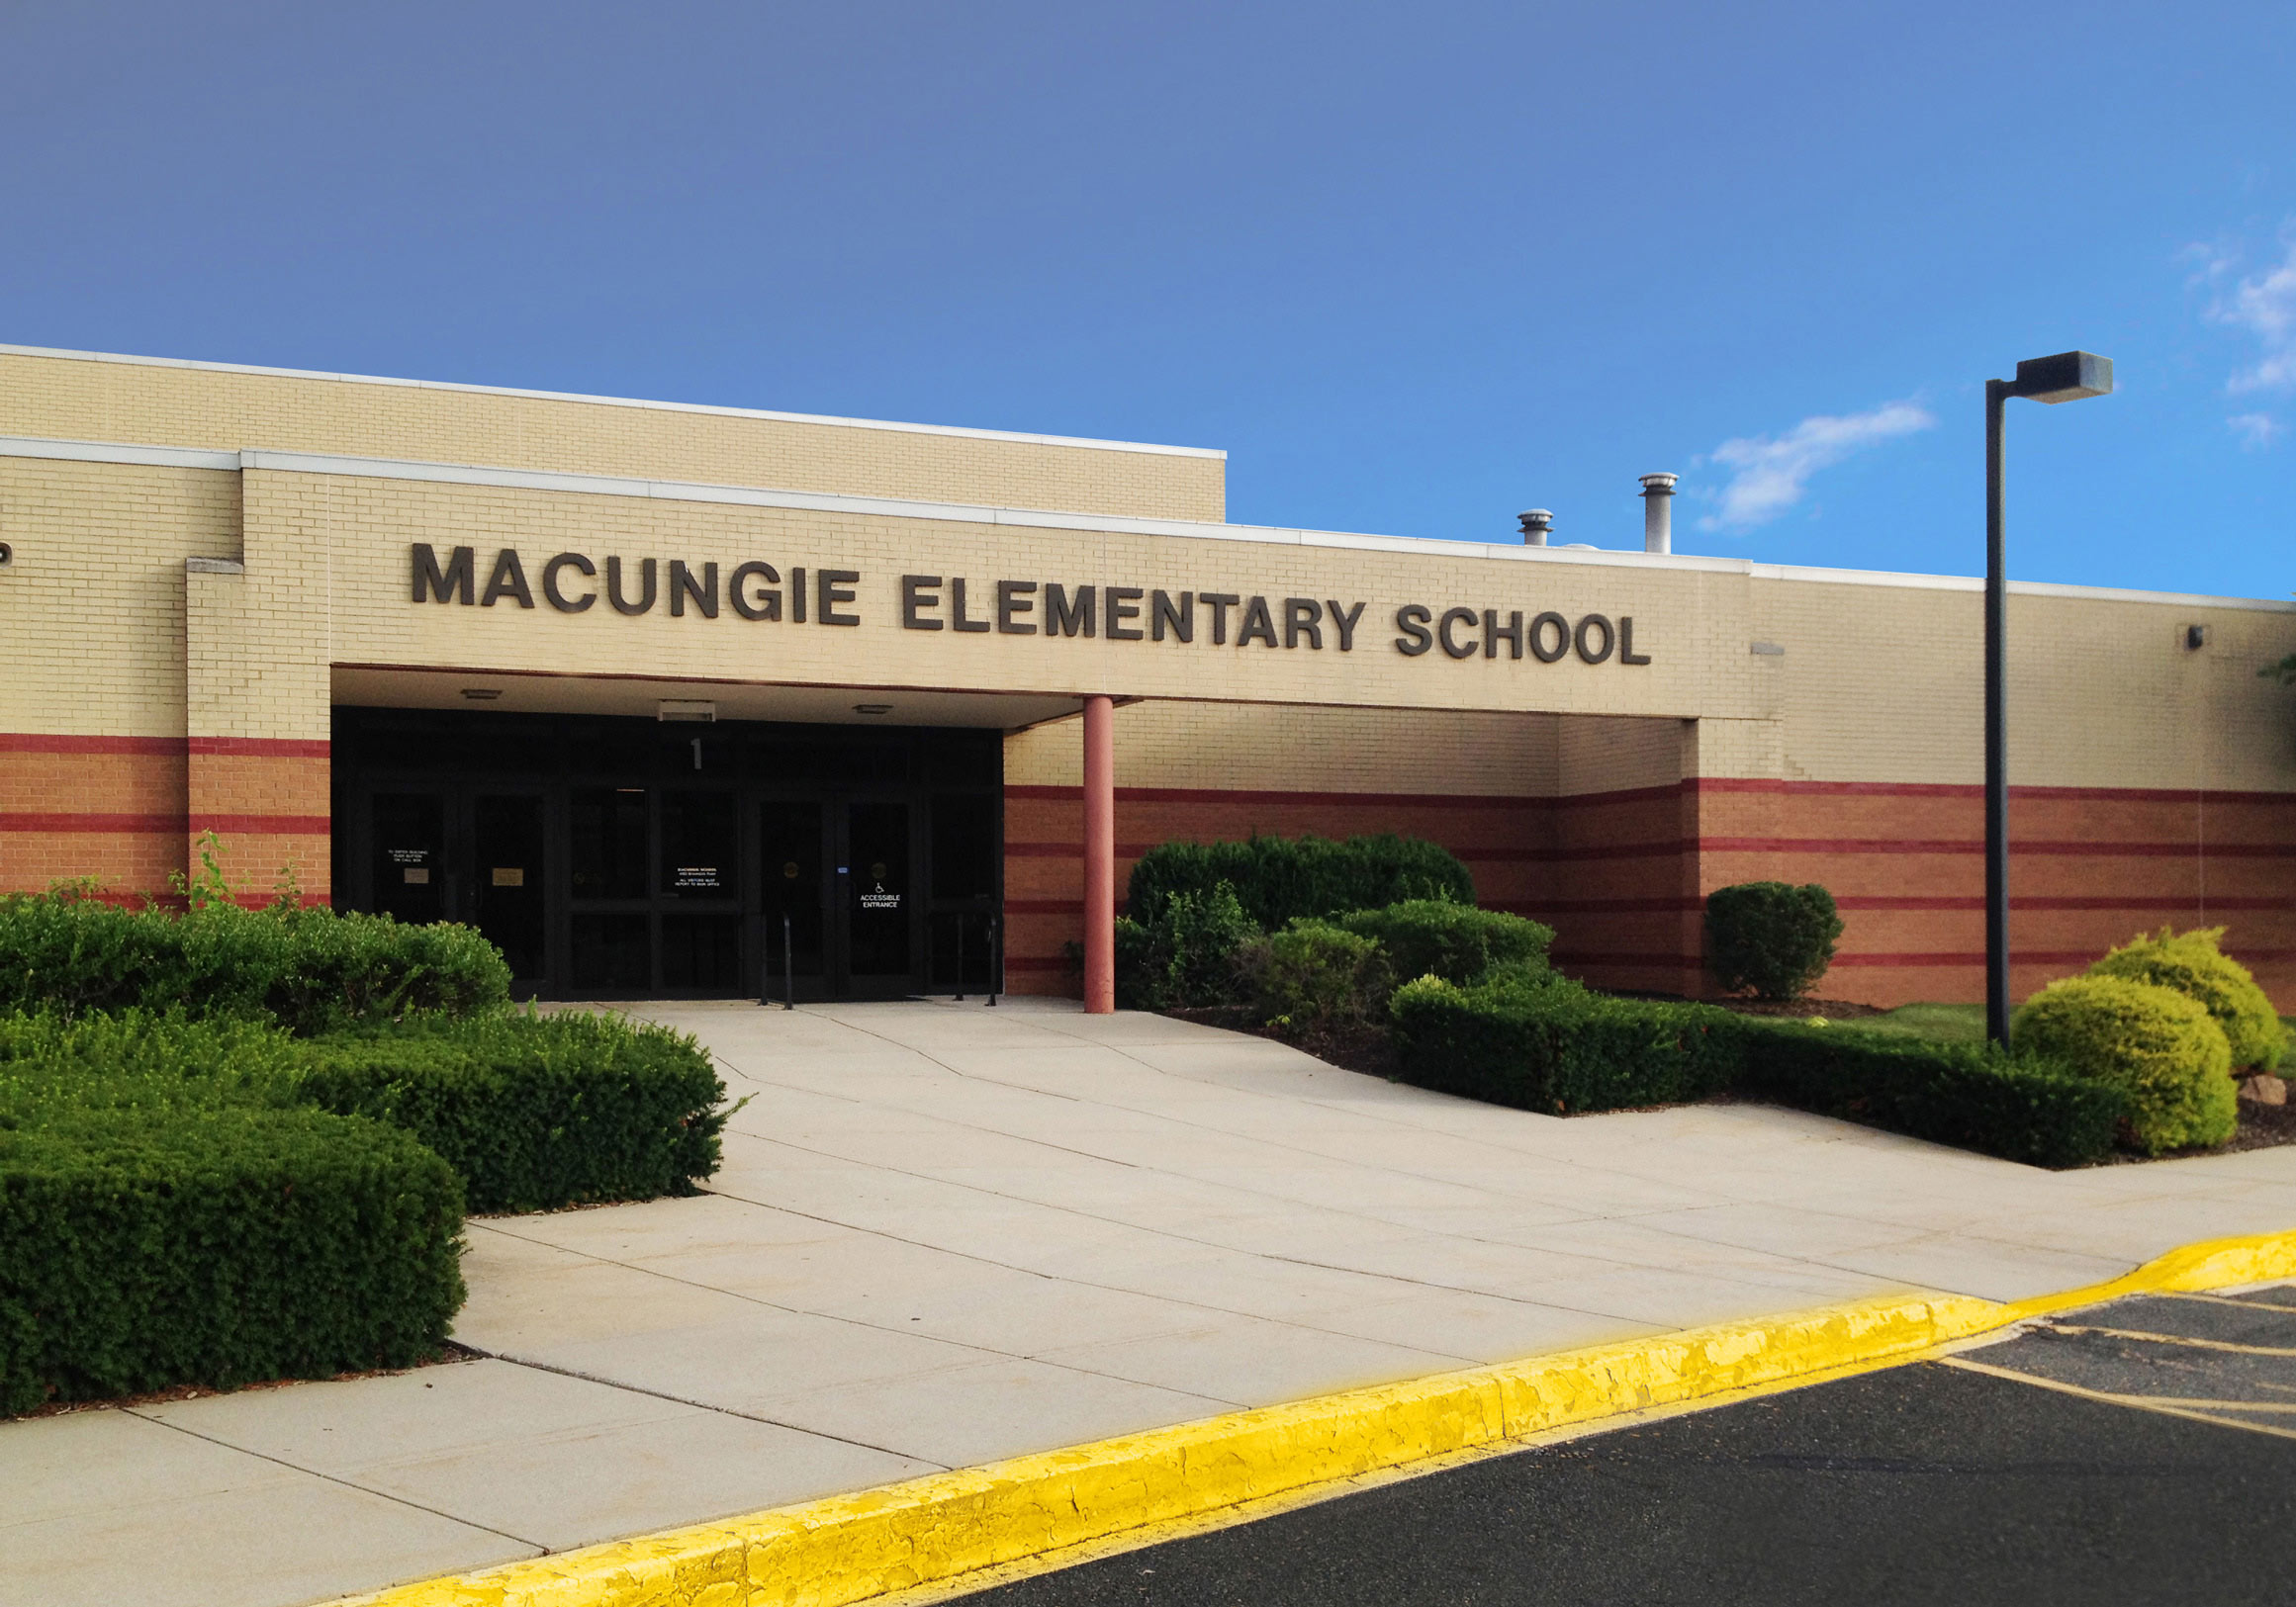 Macungie Elementary School